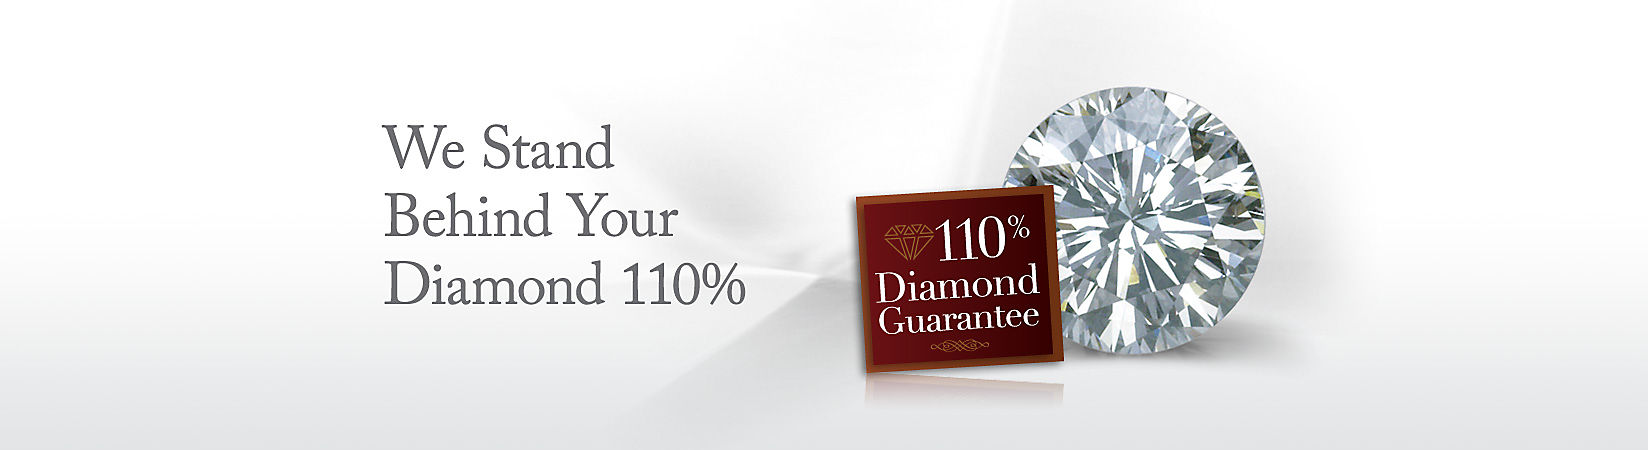 110% Diamond Guarantee